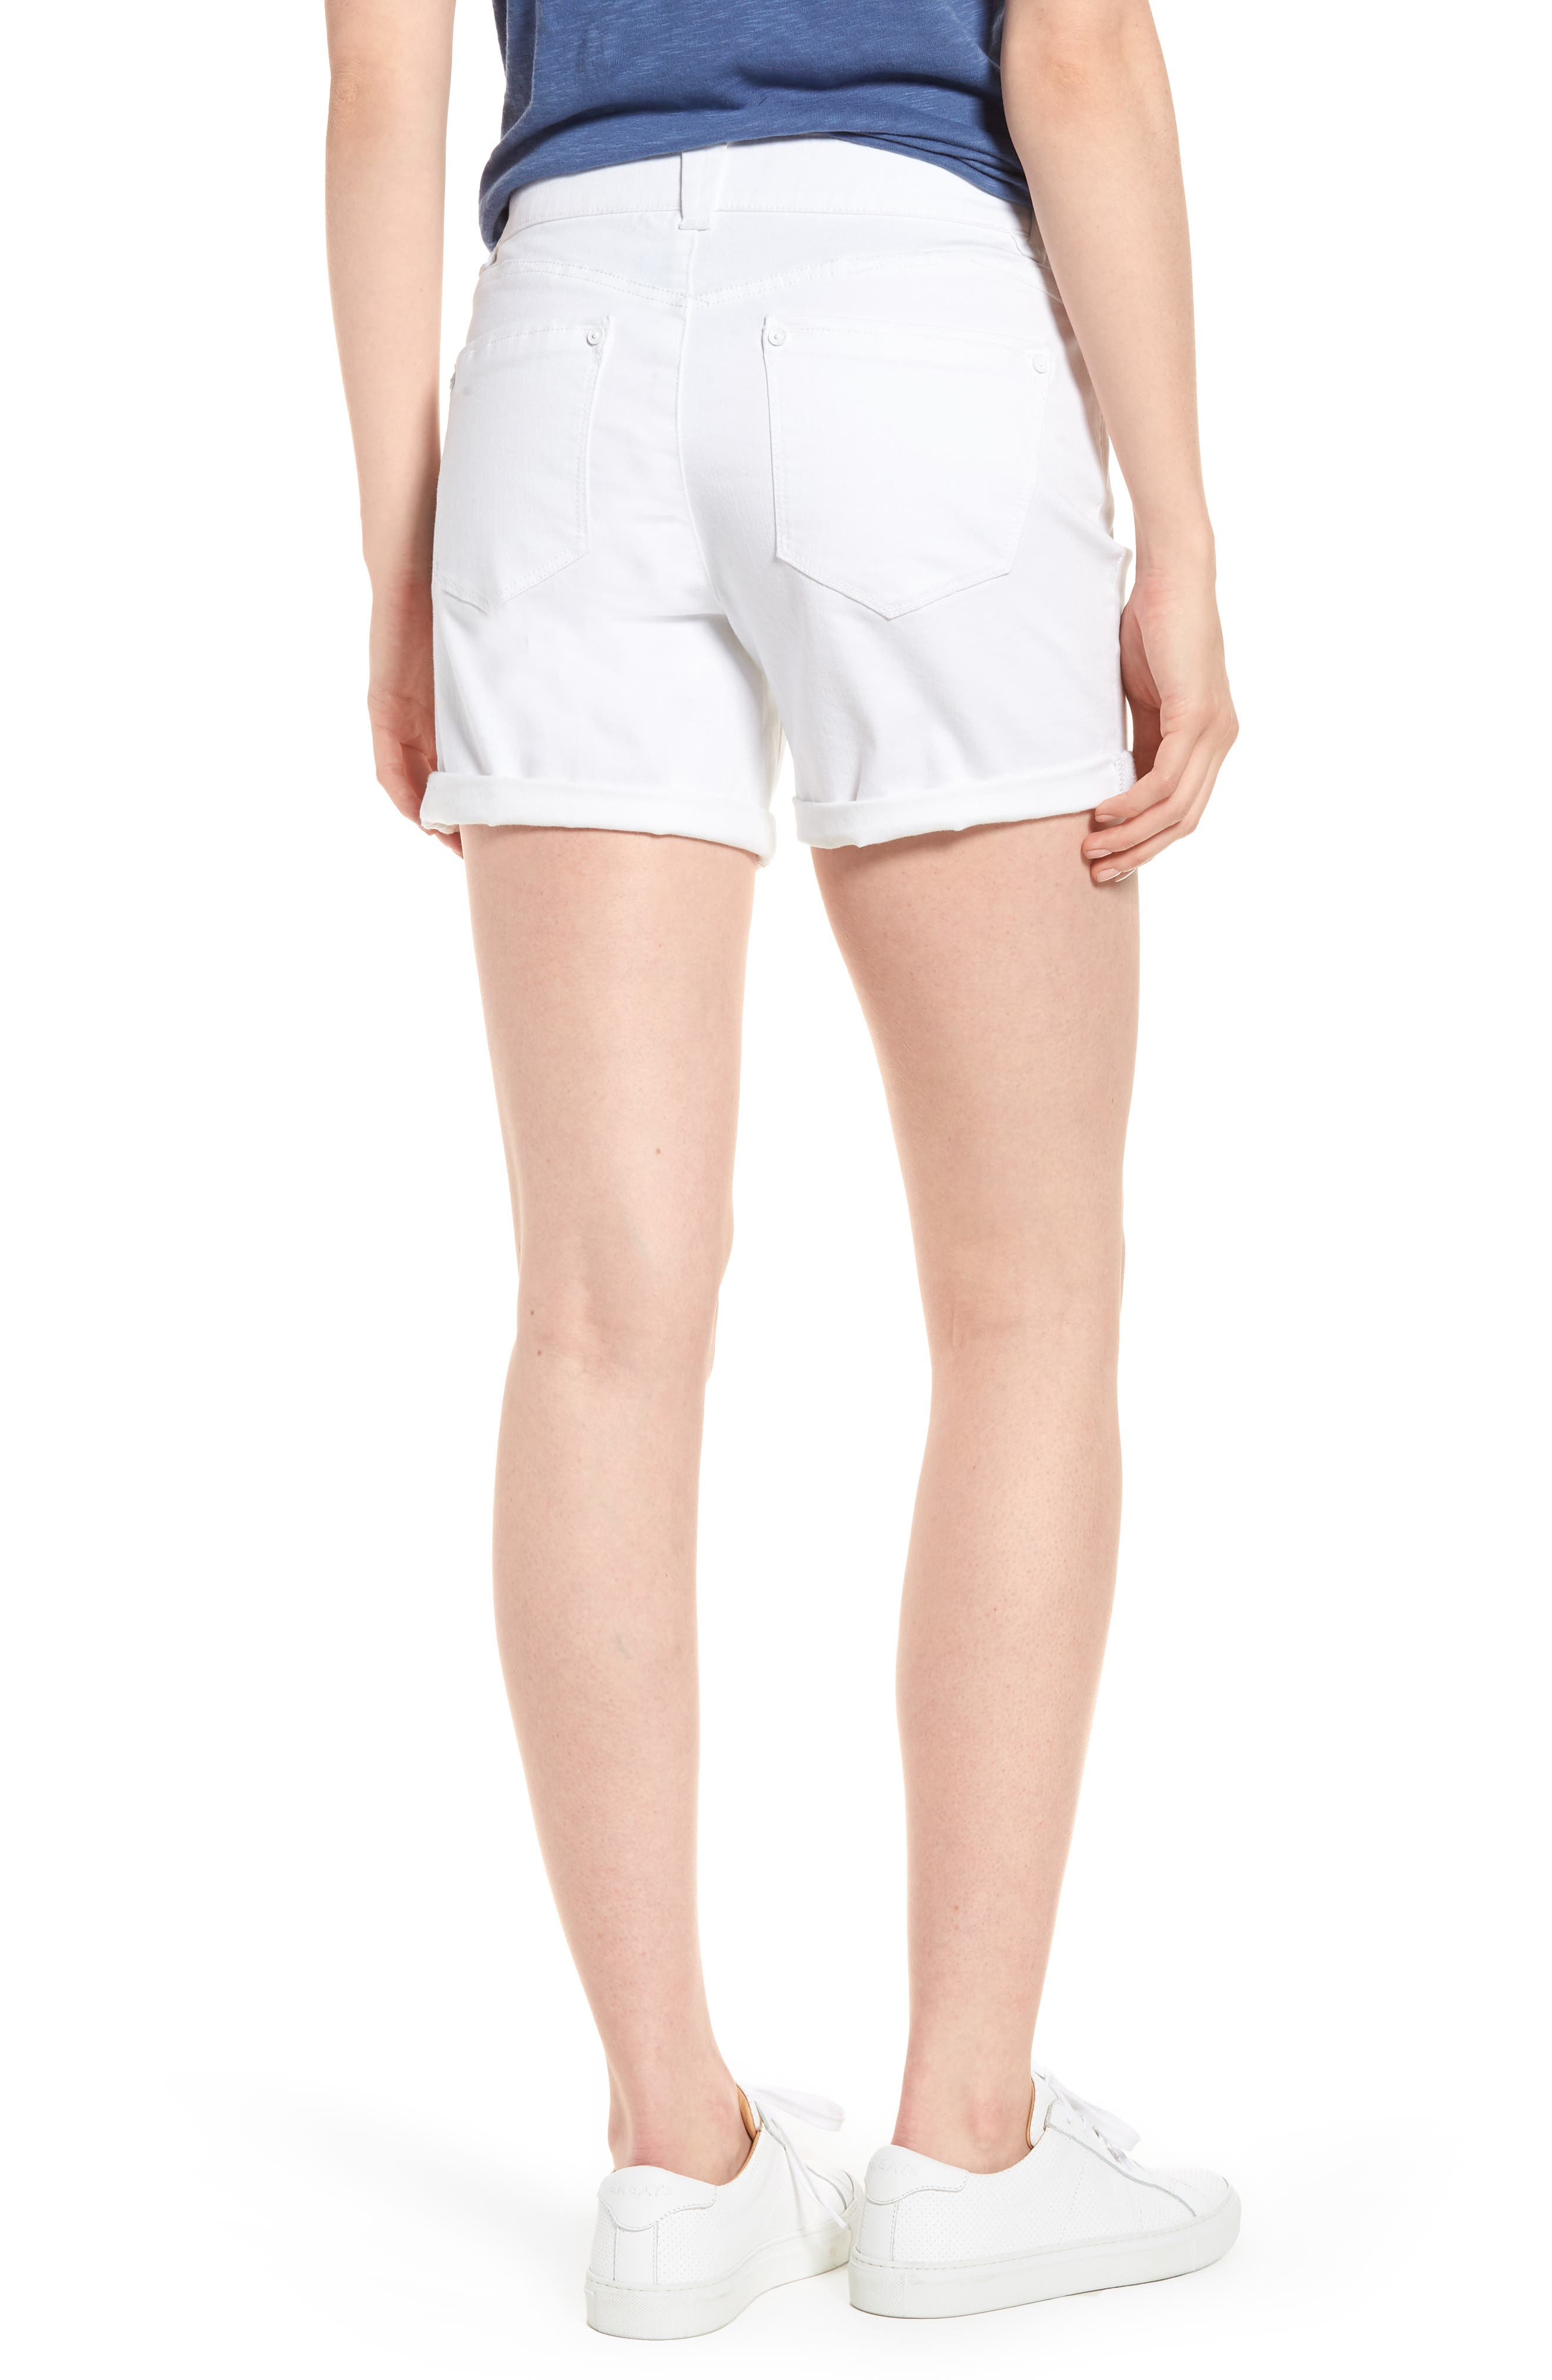 Ab-solution Cuffed White Shorts,                             Alternate thumbnail 2, color,                             106